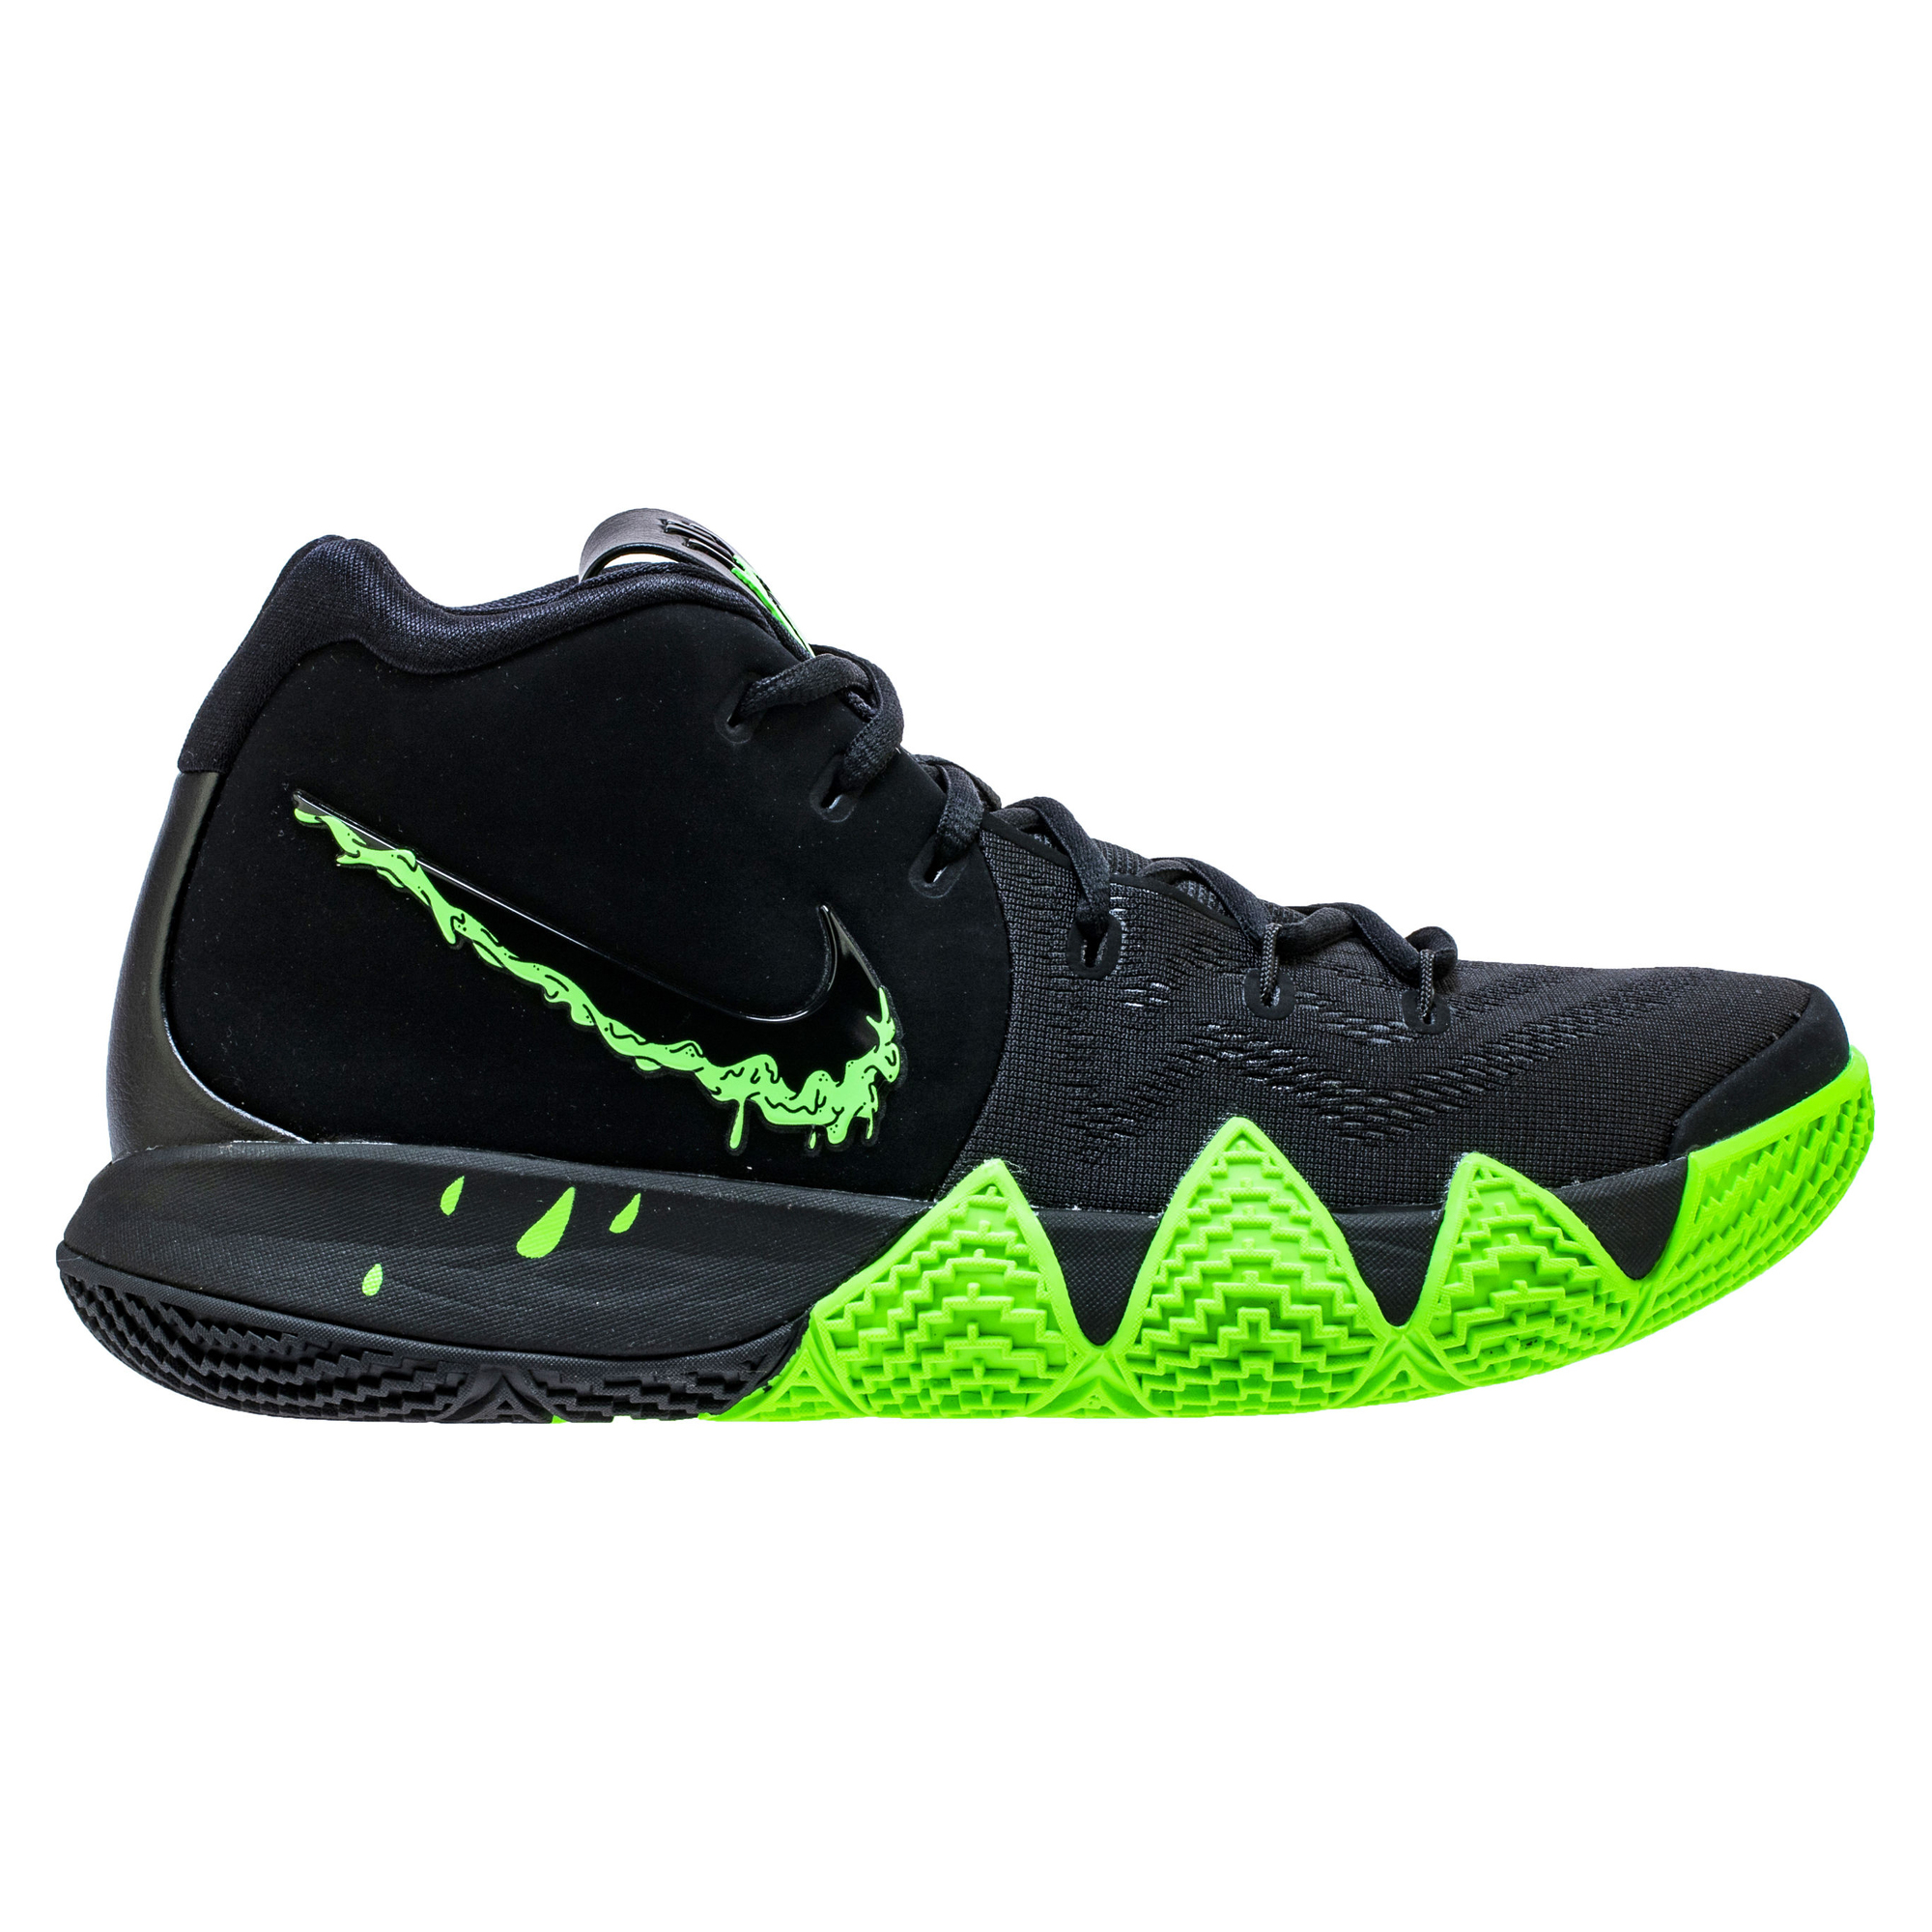 07c4b8f4288 Kyrie Irving s Latest Kyrie 4 Gets Slimed - WearTesters